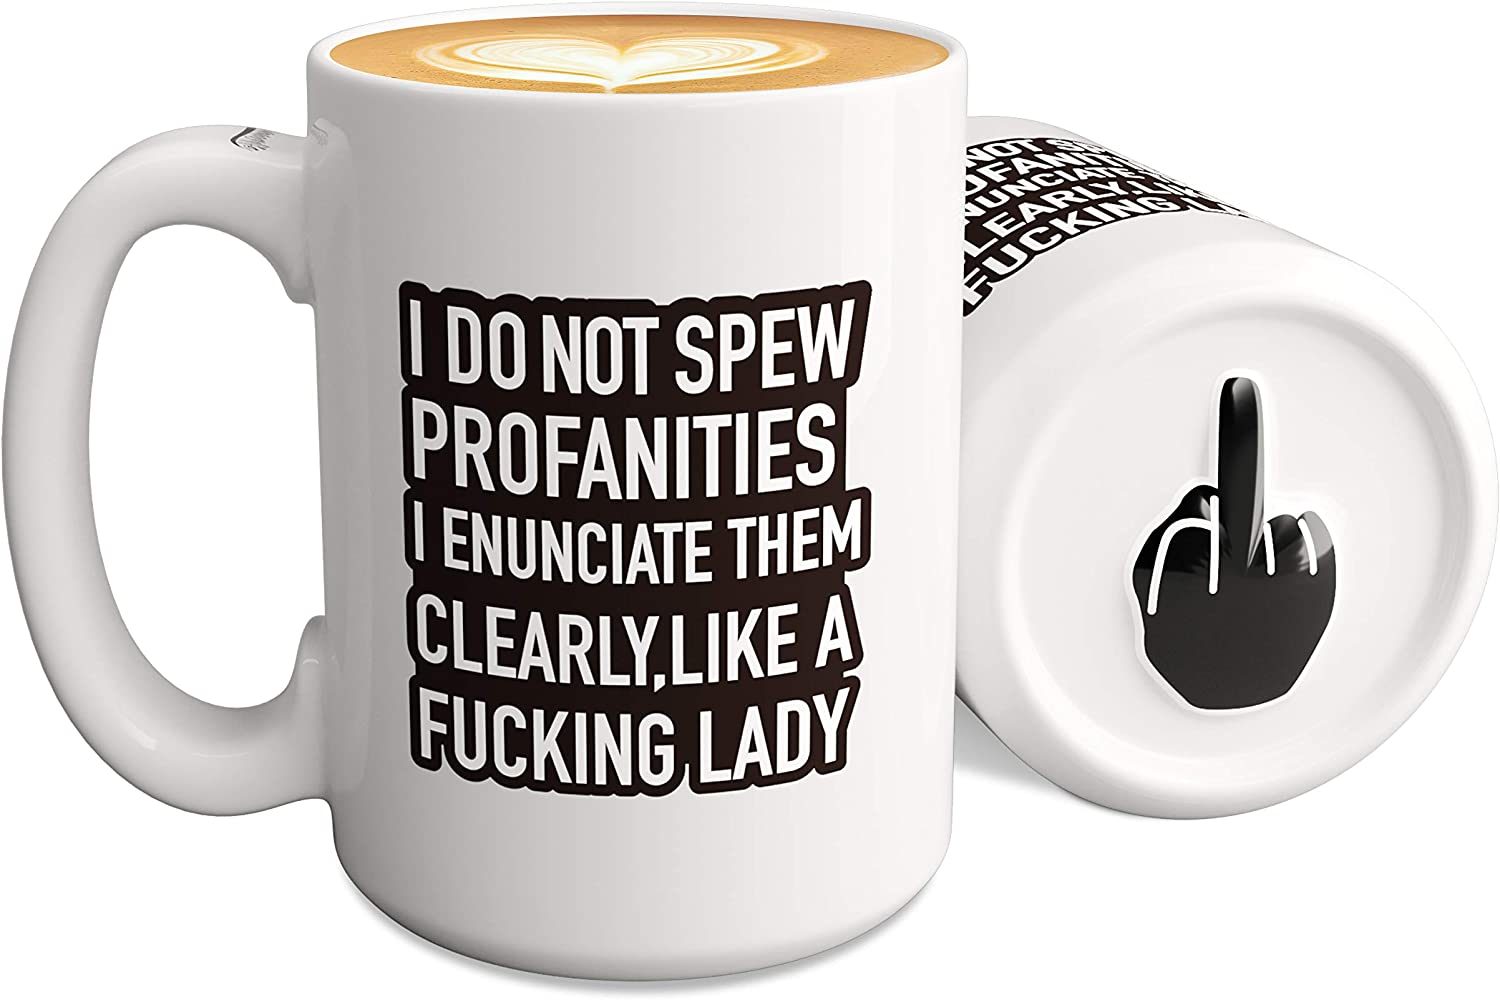 Funny Mugs - Gifts for Women - I Do Not Spew P I Enunciate Them Clearly Like a Lady - 15 Oz Novelty Coffee Mugs with Middle Finger on the Bottom